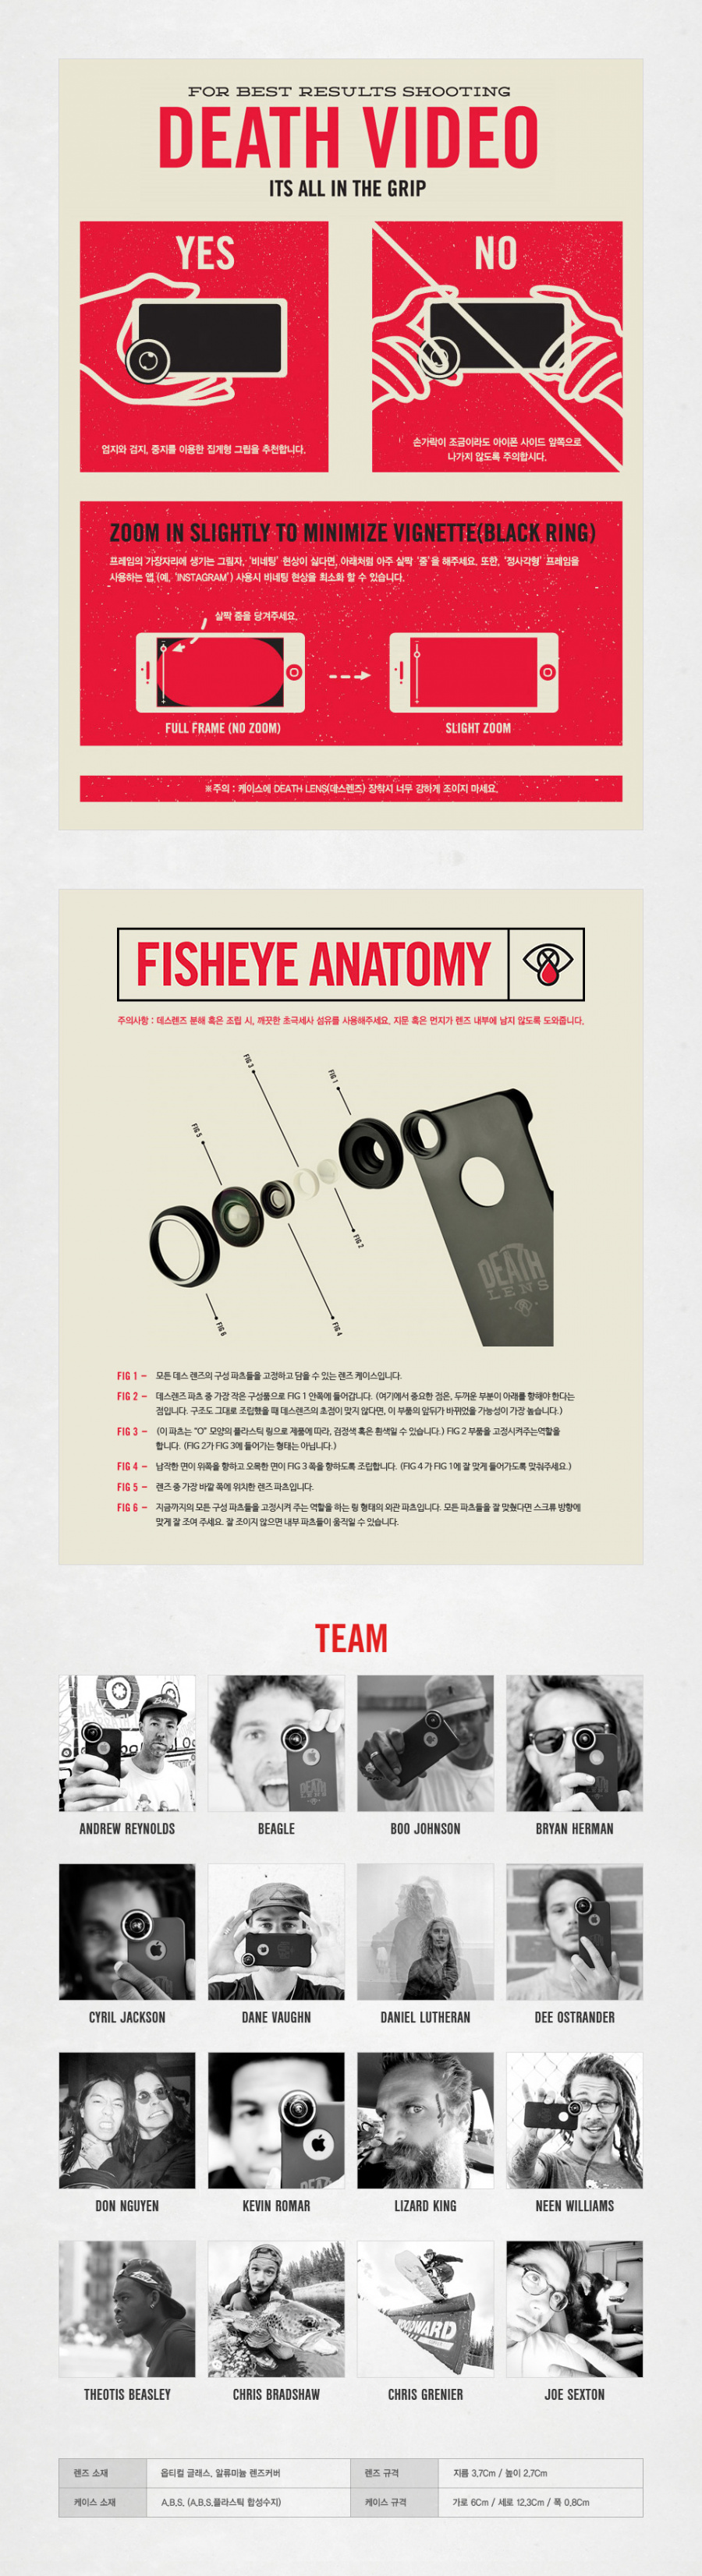 데스렌즈(DEATH LENS) PRO KIT (IPHONE 8 COMPATIBLE)